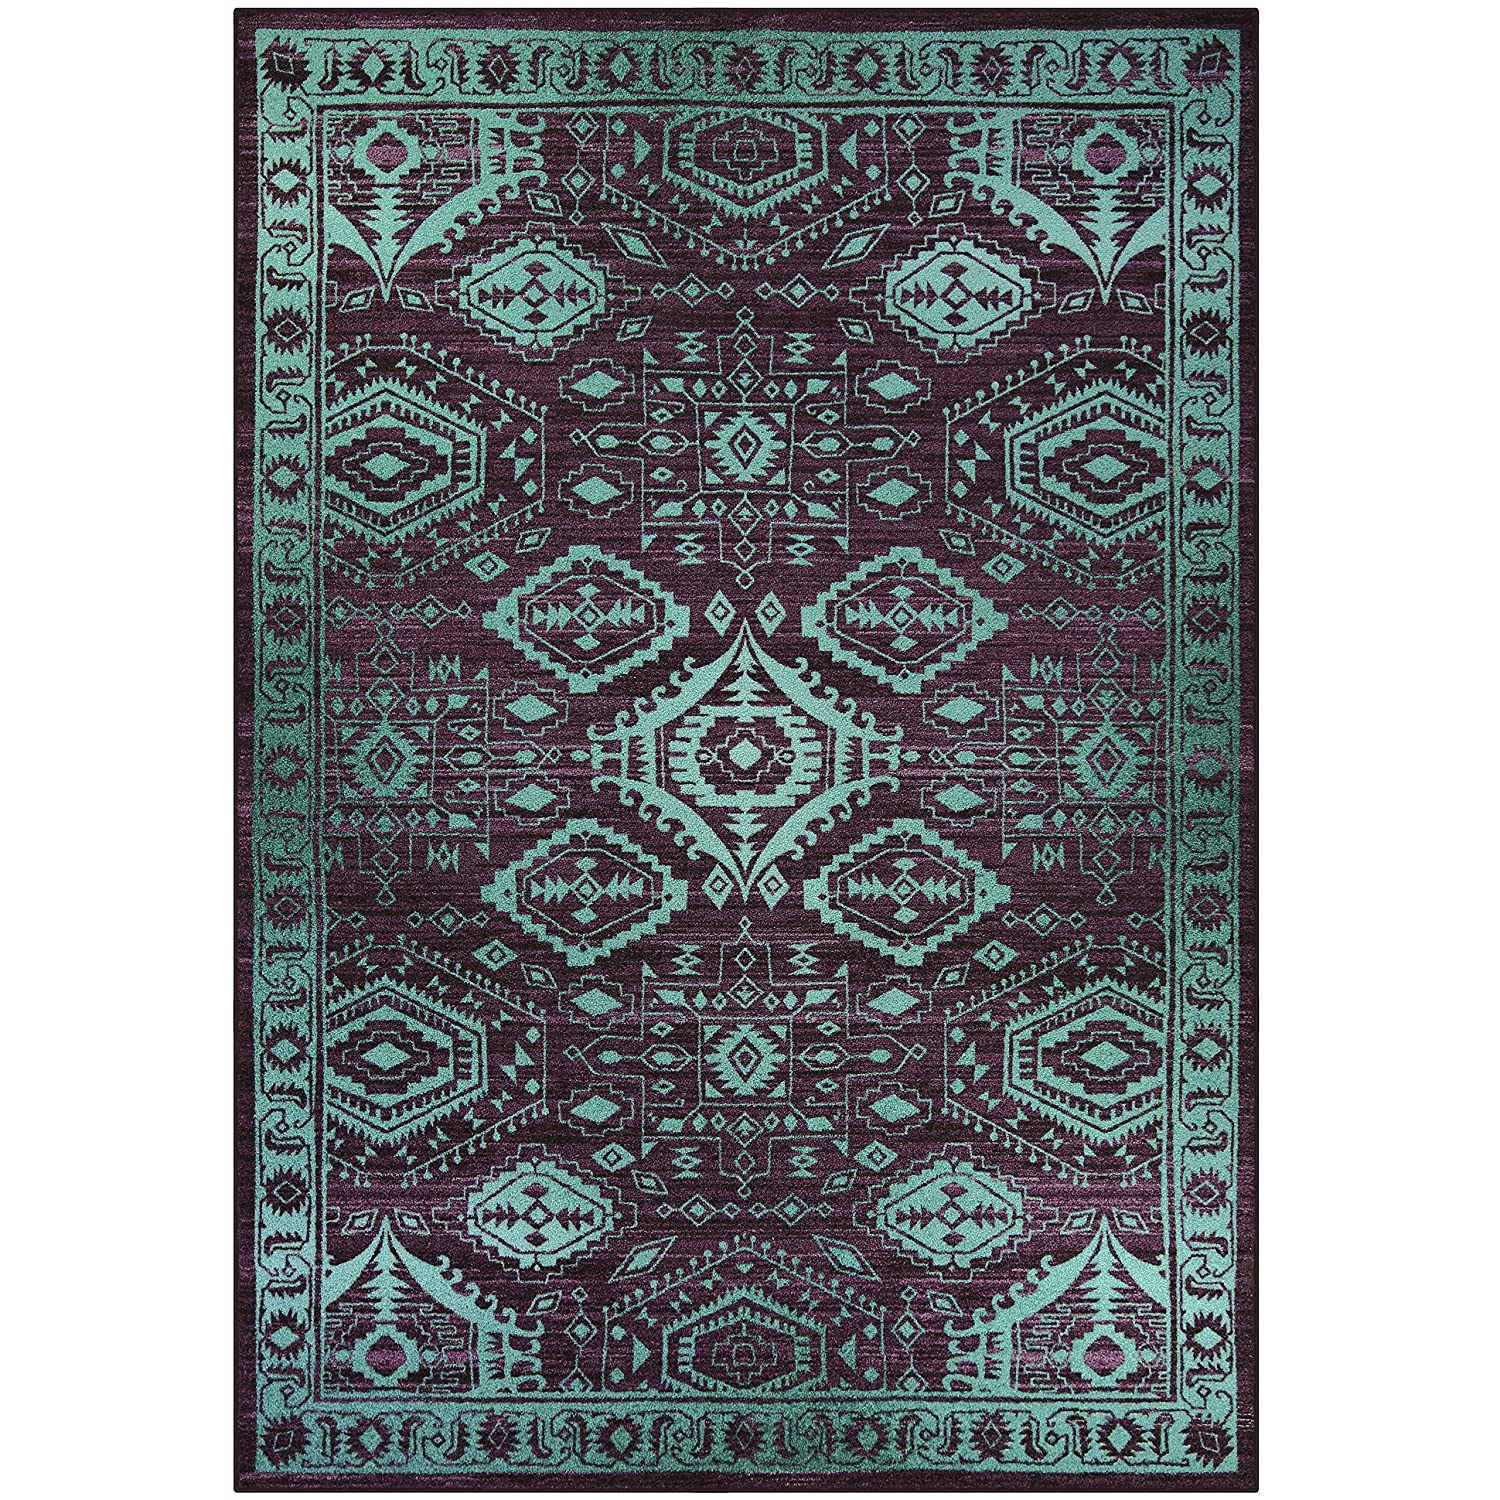 Runner Rug, Maples Rugs [Made in USA][Georgina] 2' x 6' Non Slip Hallway Entry Area Rug for Living Room, Bedroom, and Kitchen - Wineberry/Teal Runner Rug -Georgina